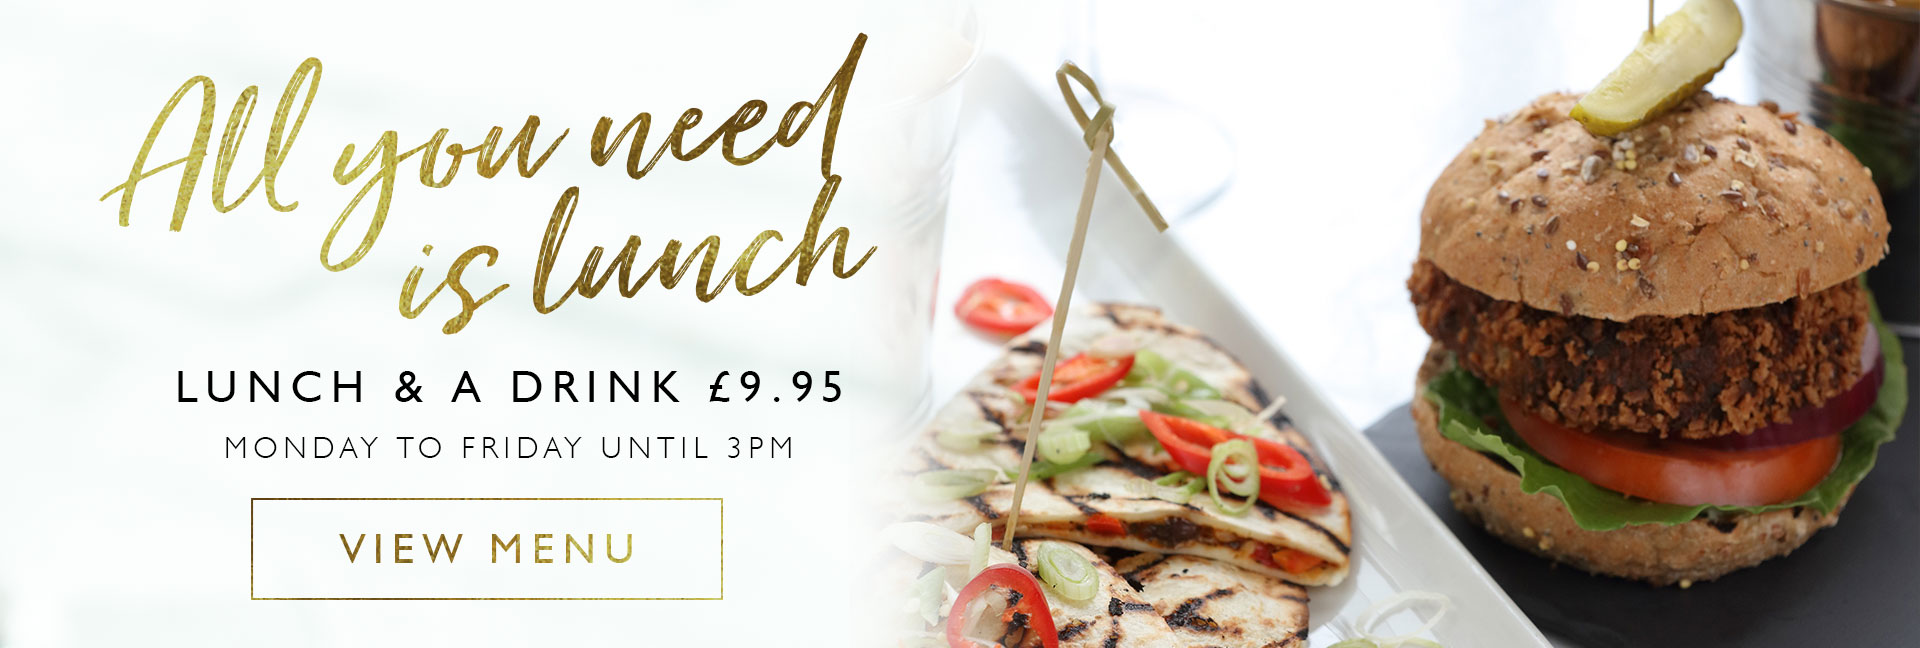 Lunch Offer at All Bar One Houndsditch